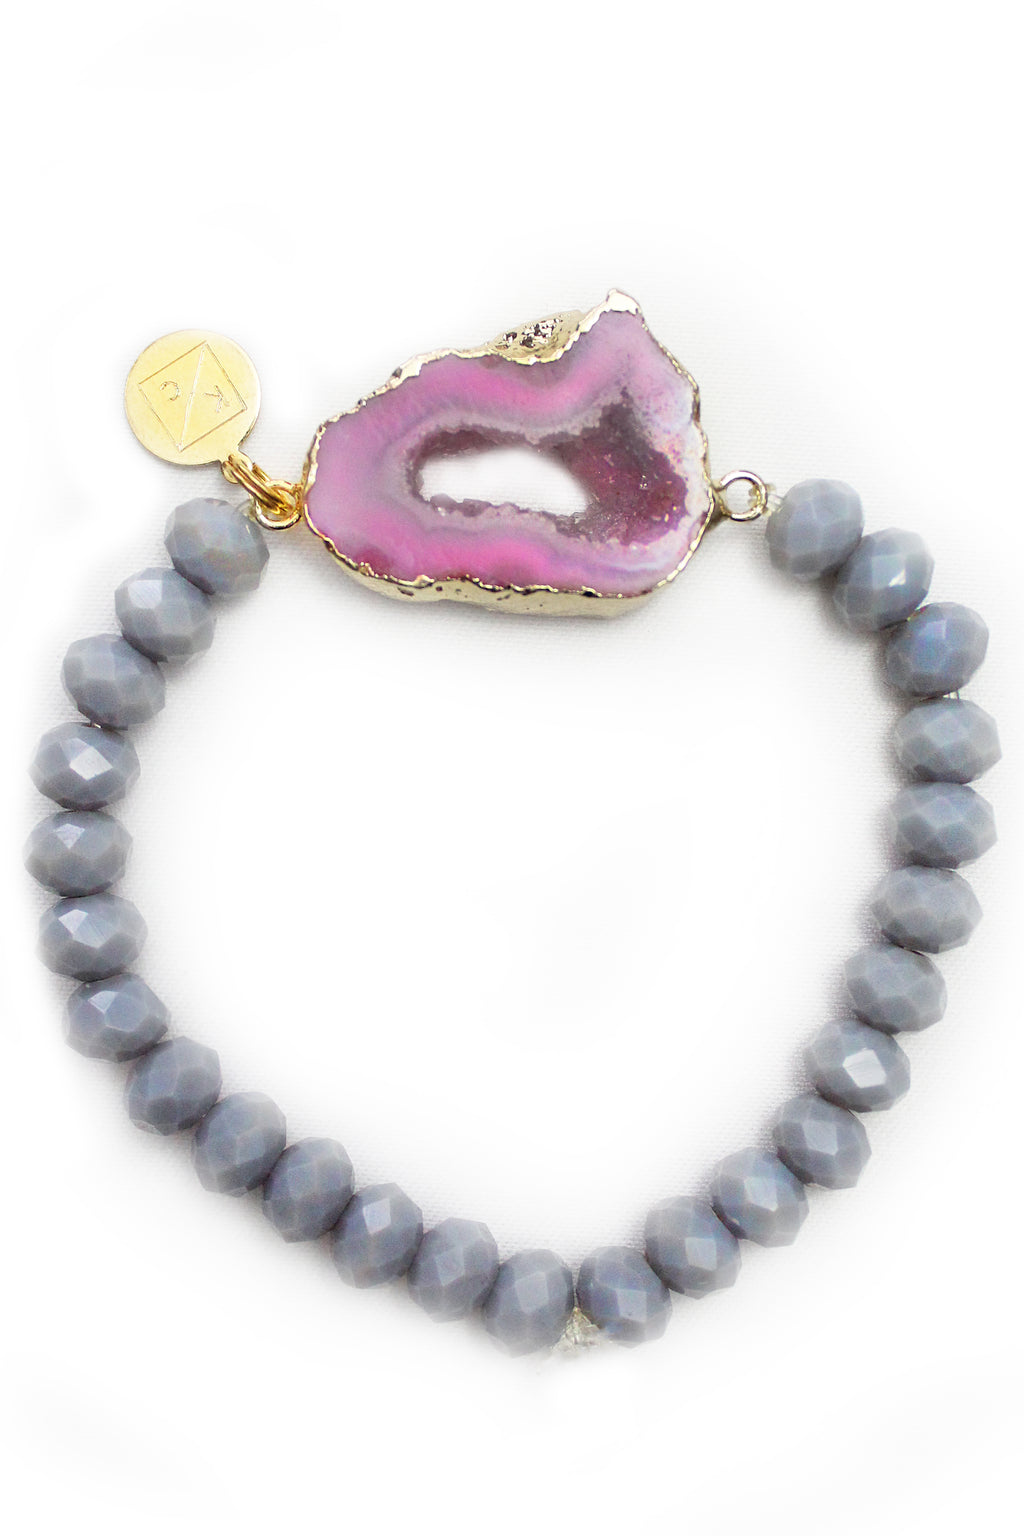 Layla Pink Druzy Stone Beaded Stretch Bracelet - Shop Kendry Collection Boutique Handmade Jewelry